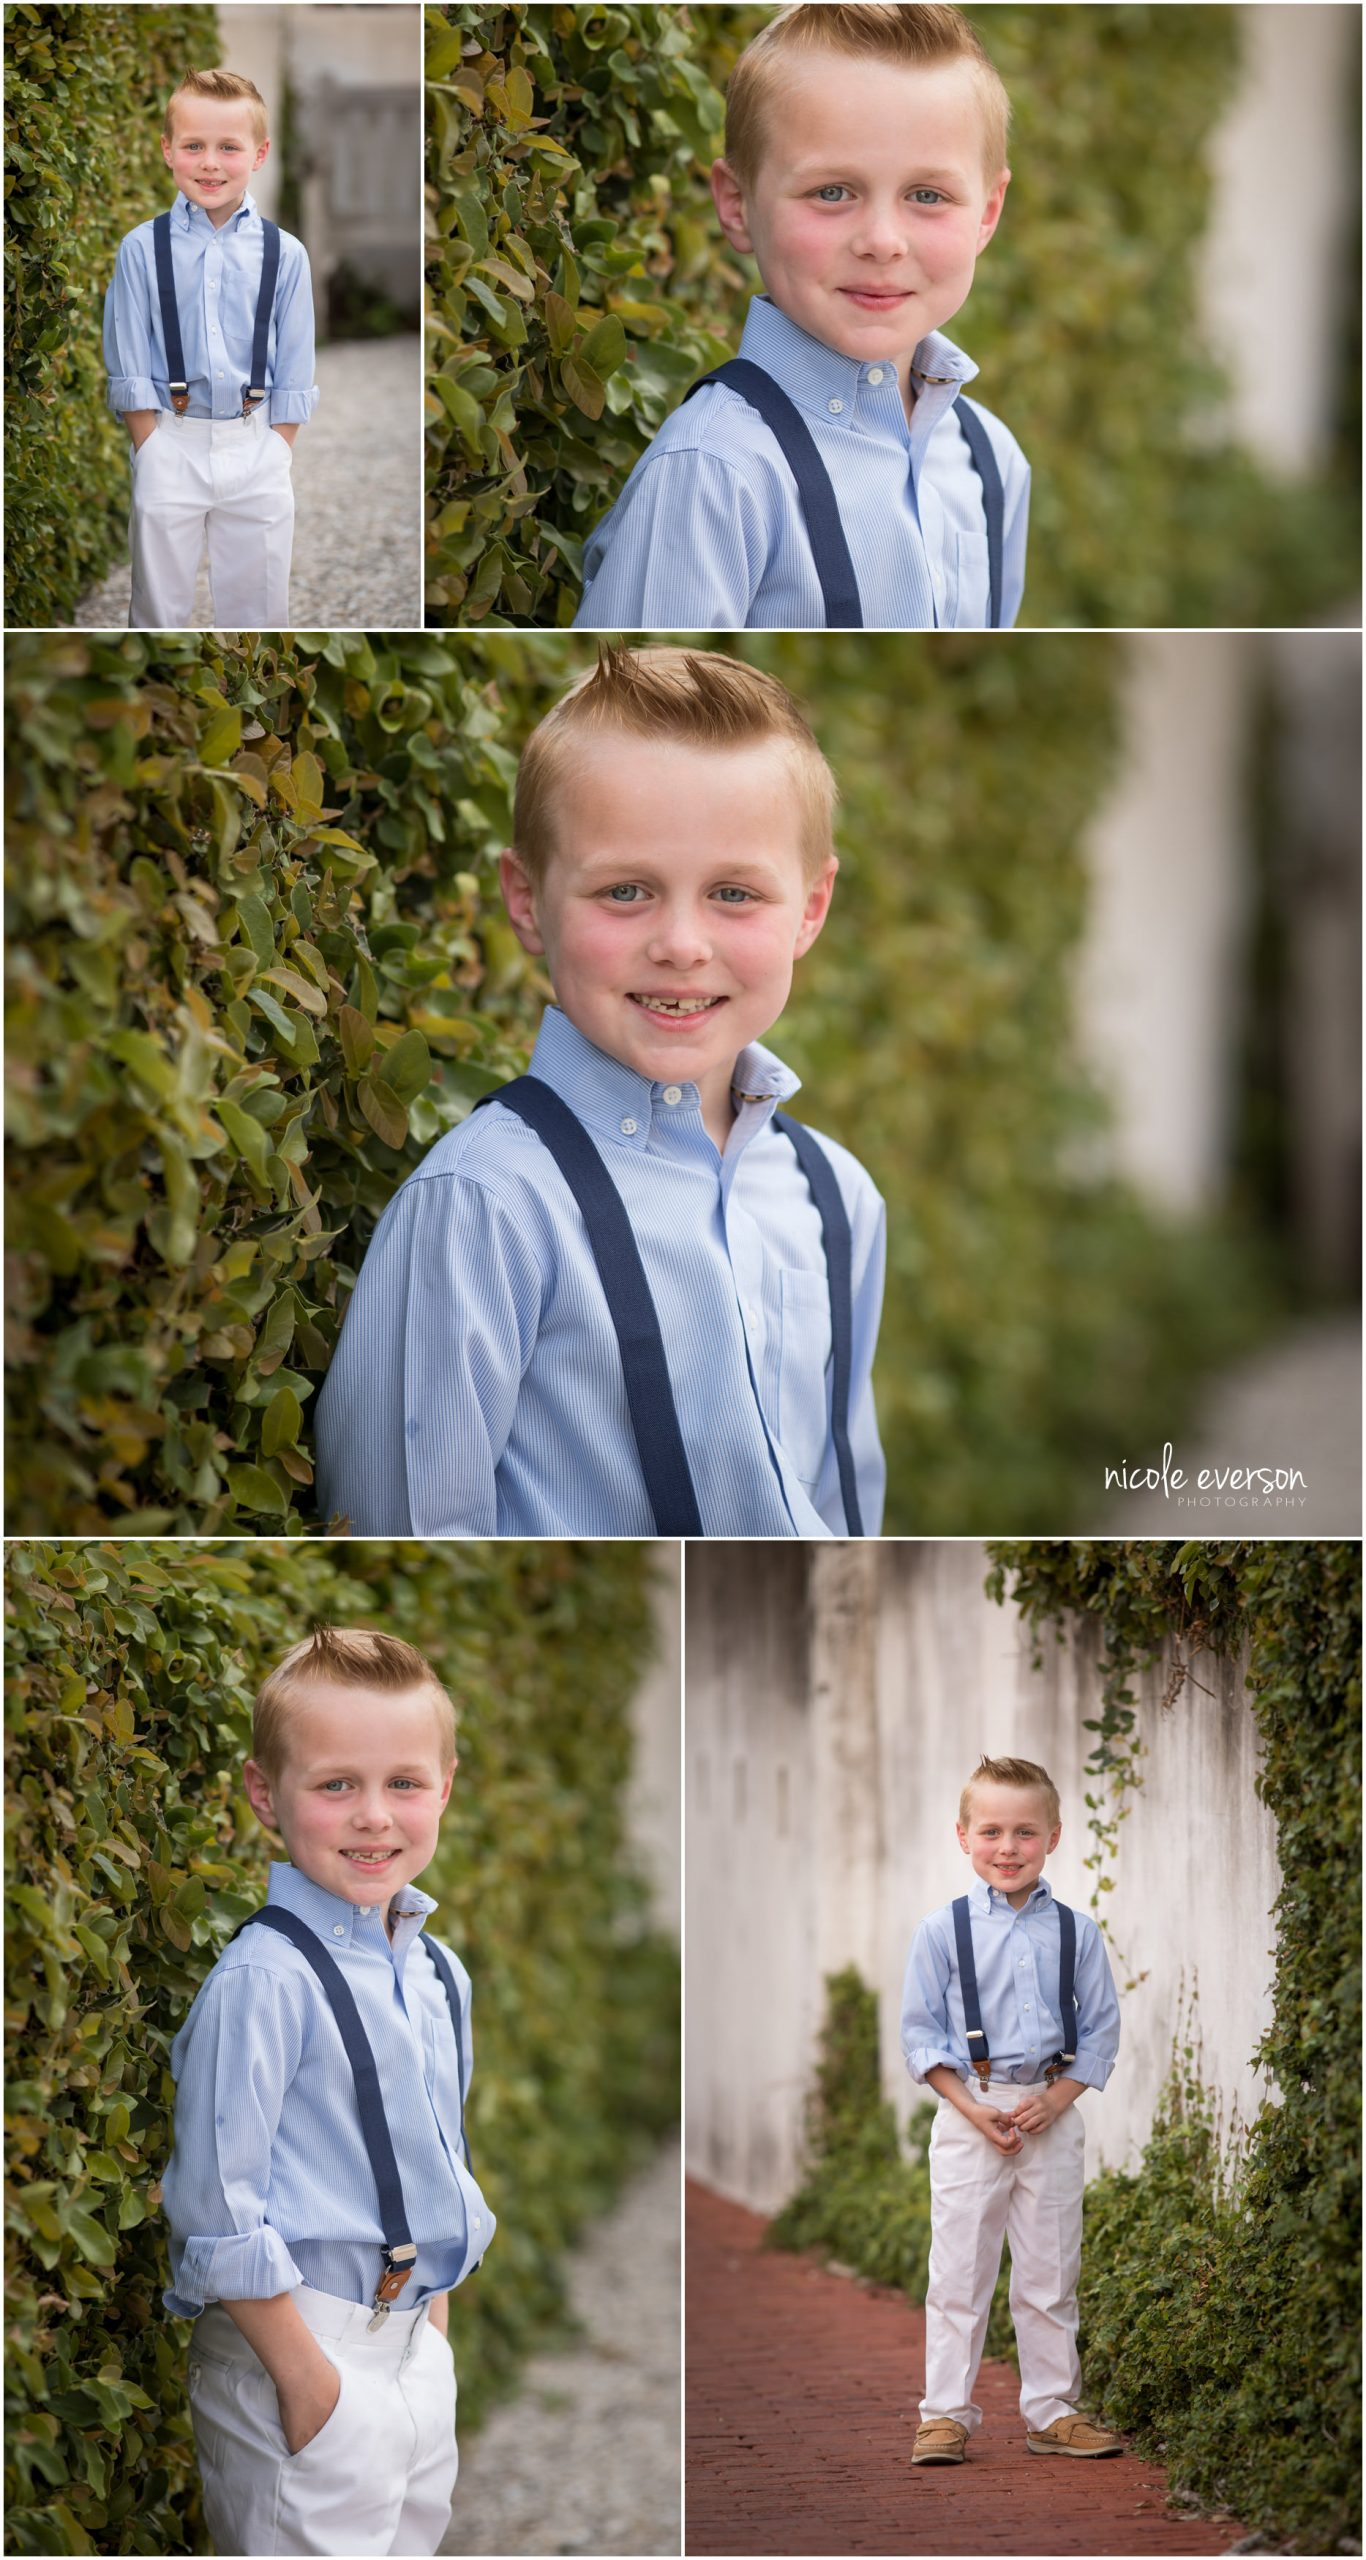 Little brother, Rosemary Beach family photos. Nicole Everson Photography.